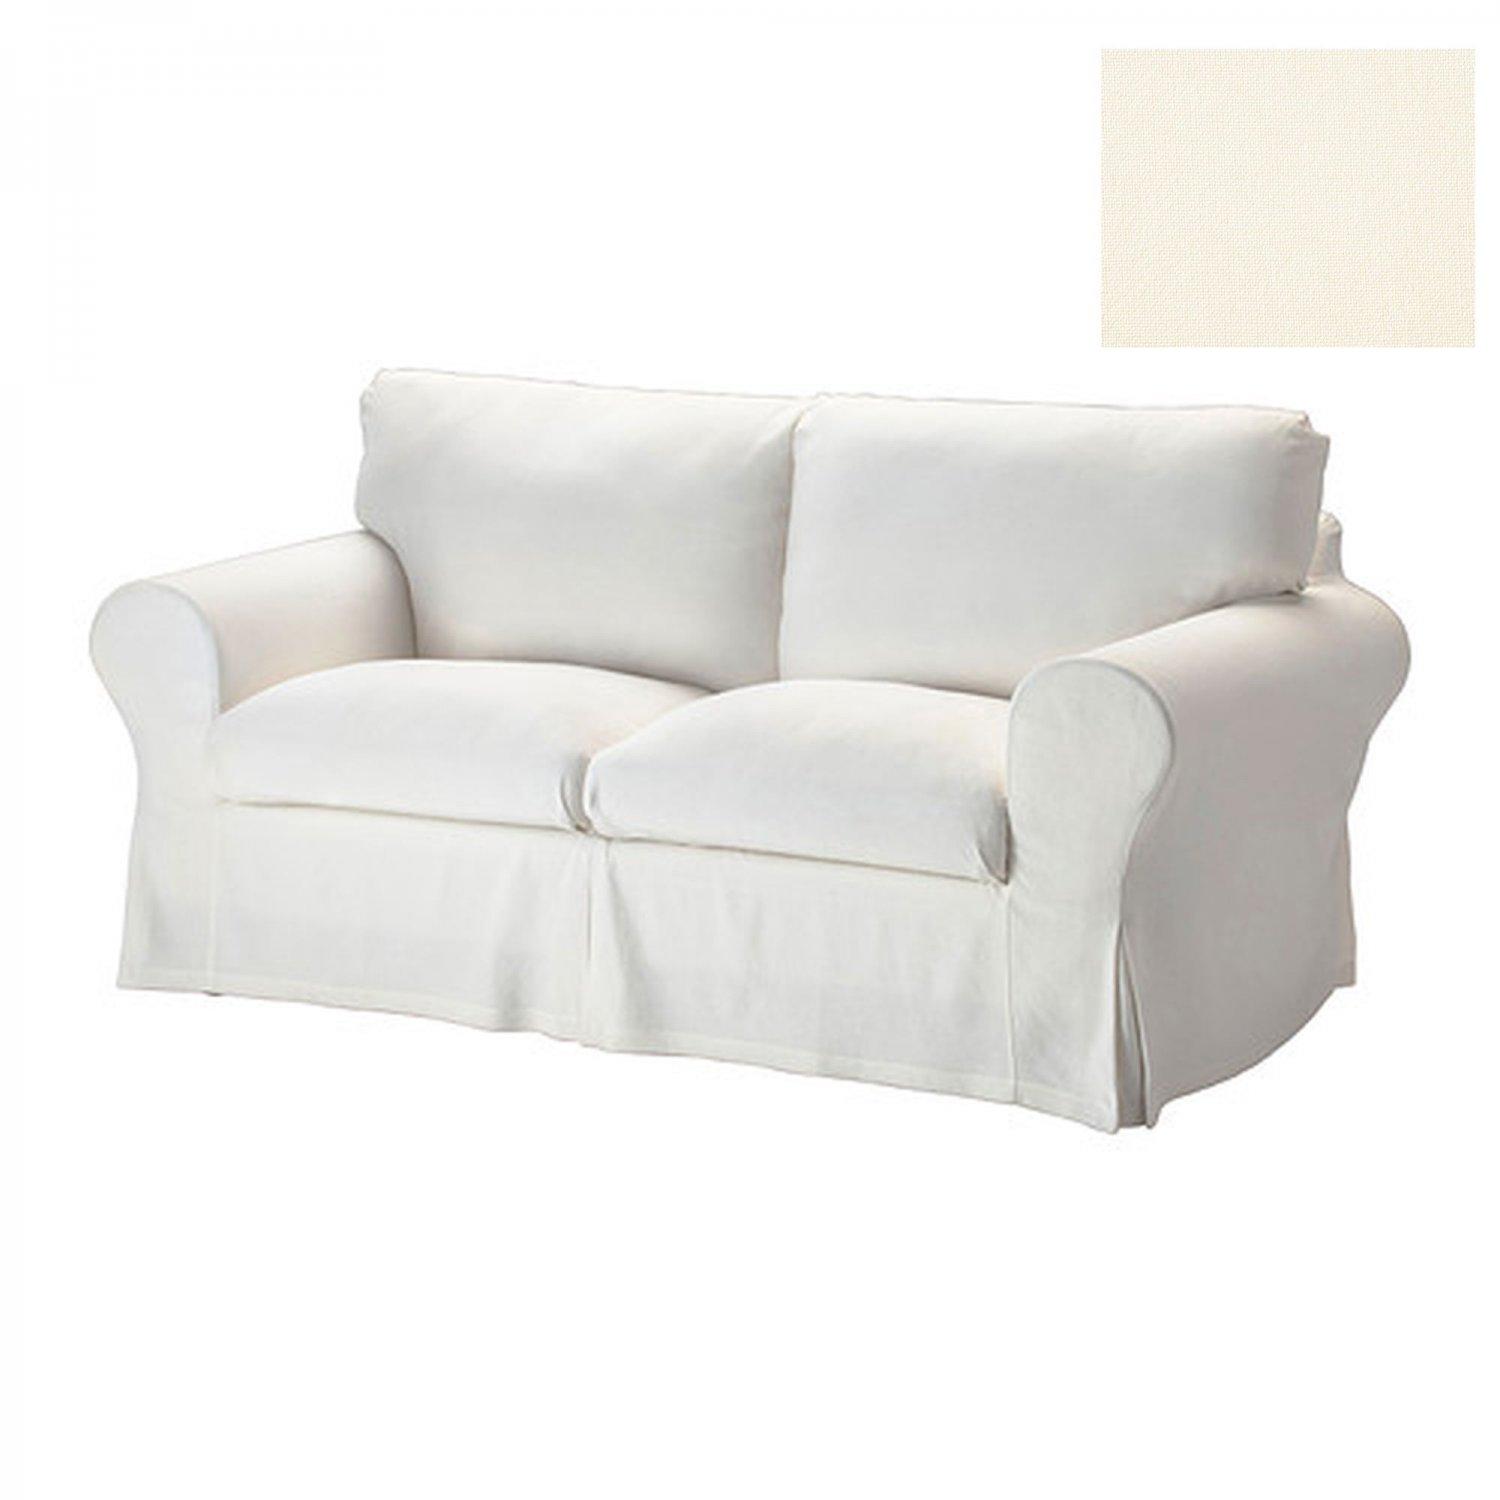 Ikea ektorp 2 seat sofa slipcover loveseat cover stenasa white off white sten sa linen blend White loveseat slipcovers